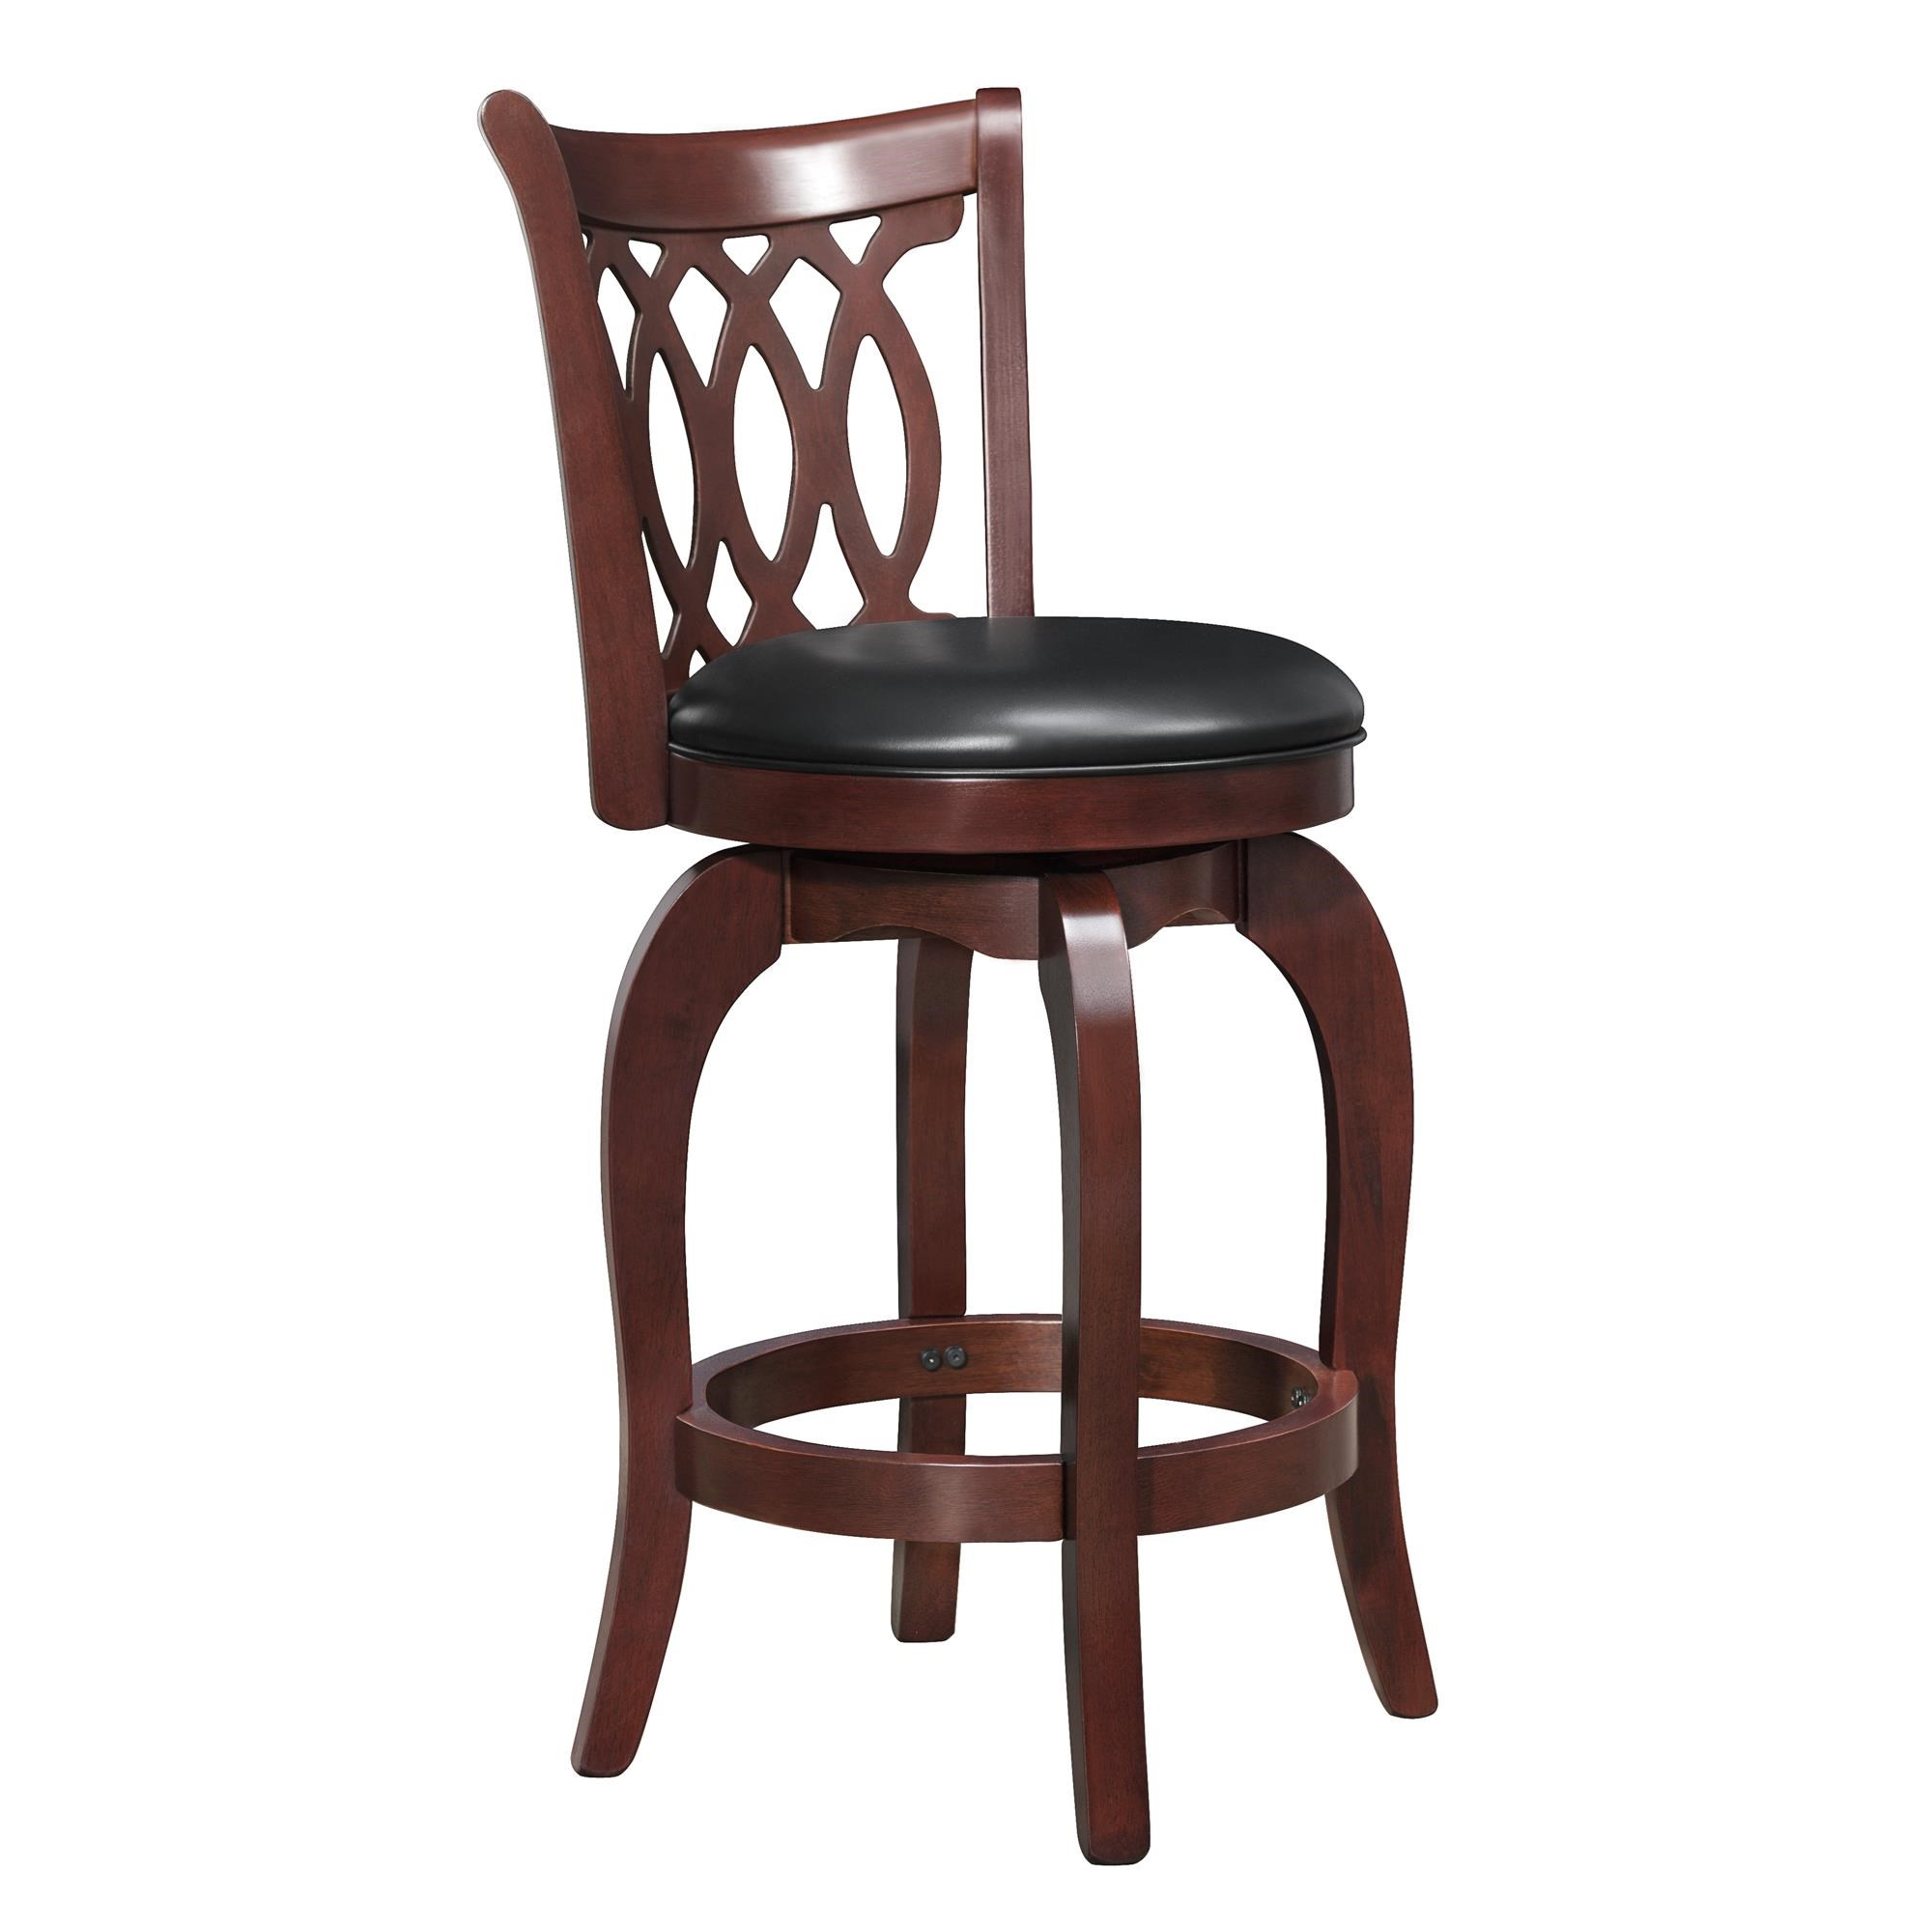 Homelegance 1133 Marcella Counter Height Stool - Item Number: 1133-24S